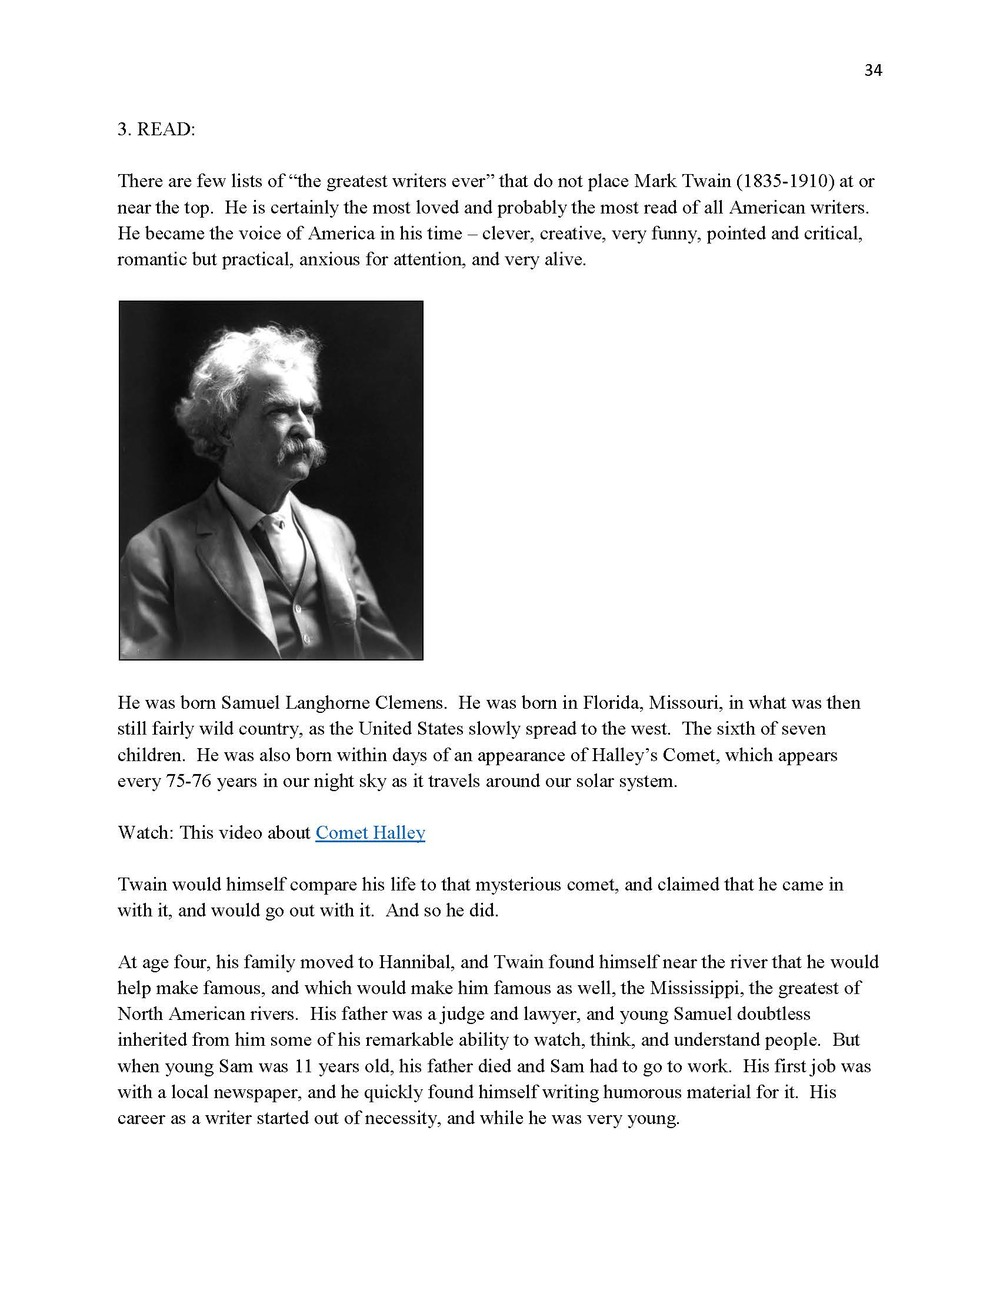 Step 3-4 Literature Guide - Mark Twain Short Stories_Page_035.jpg